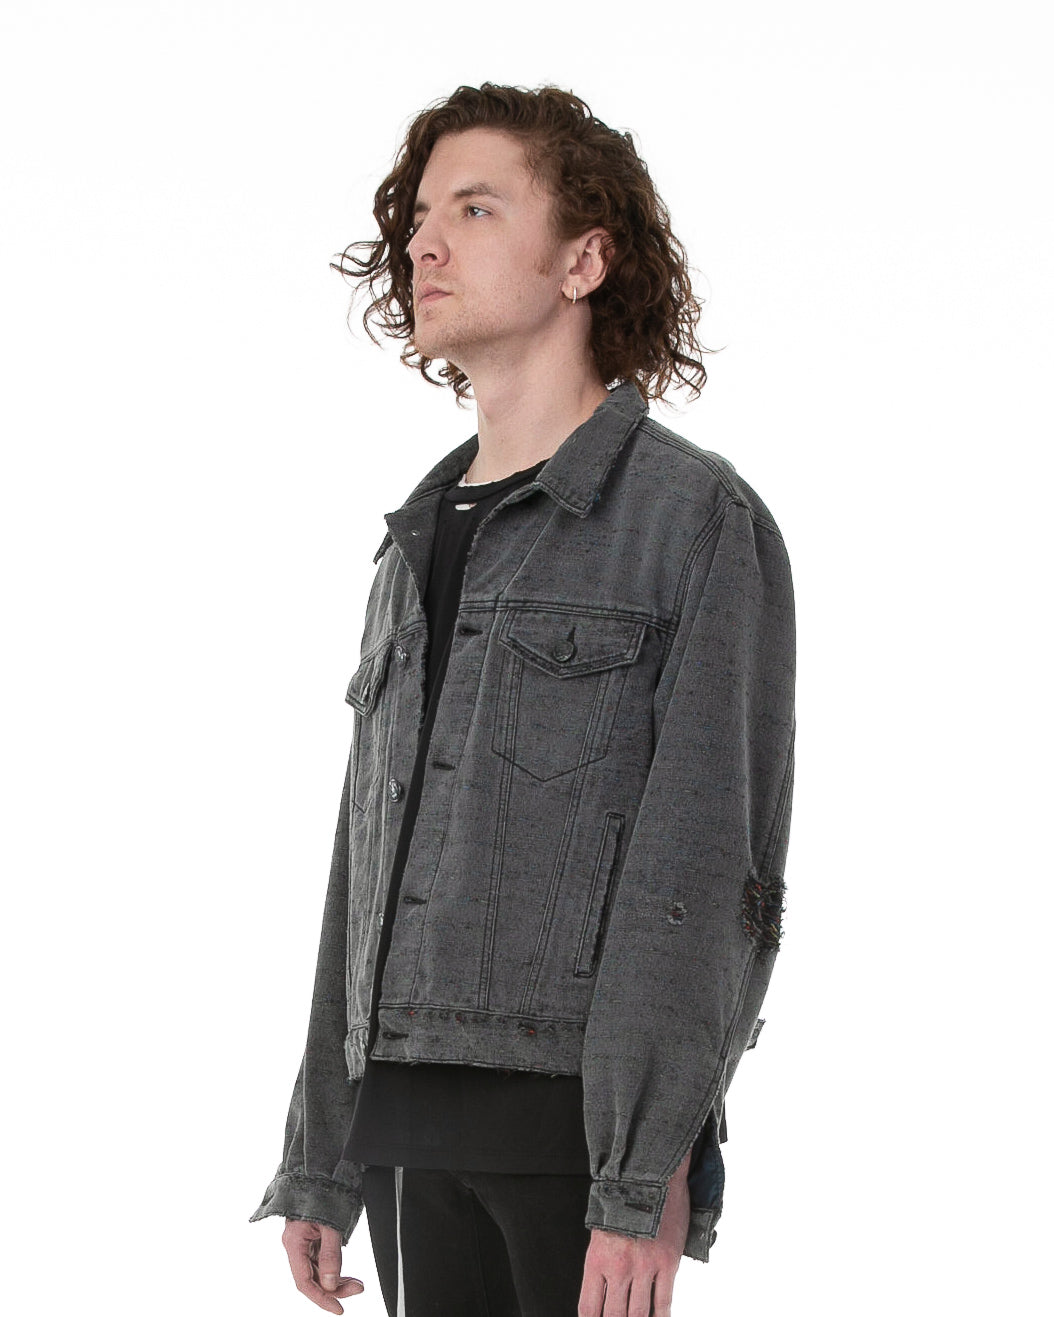 Side of male model wearing Midnight Denim jacket